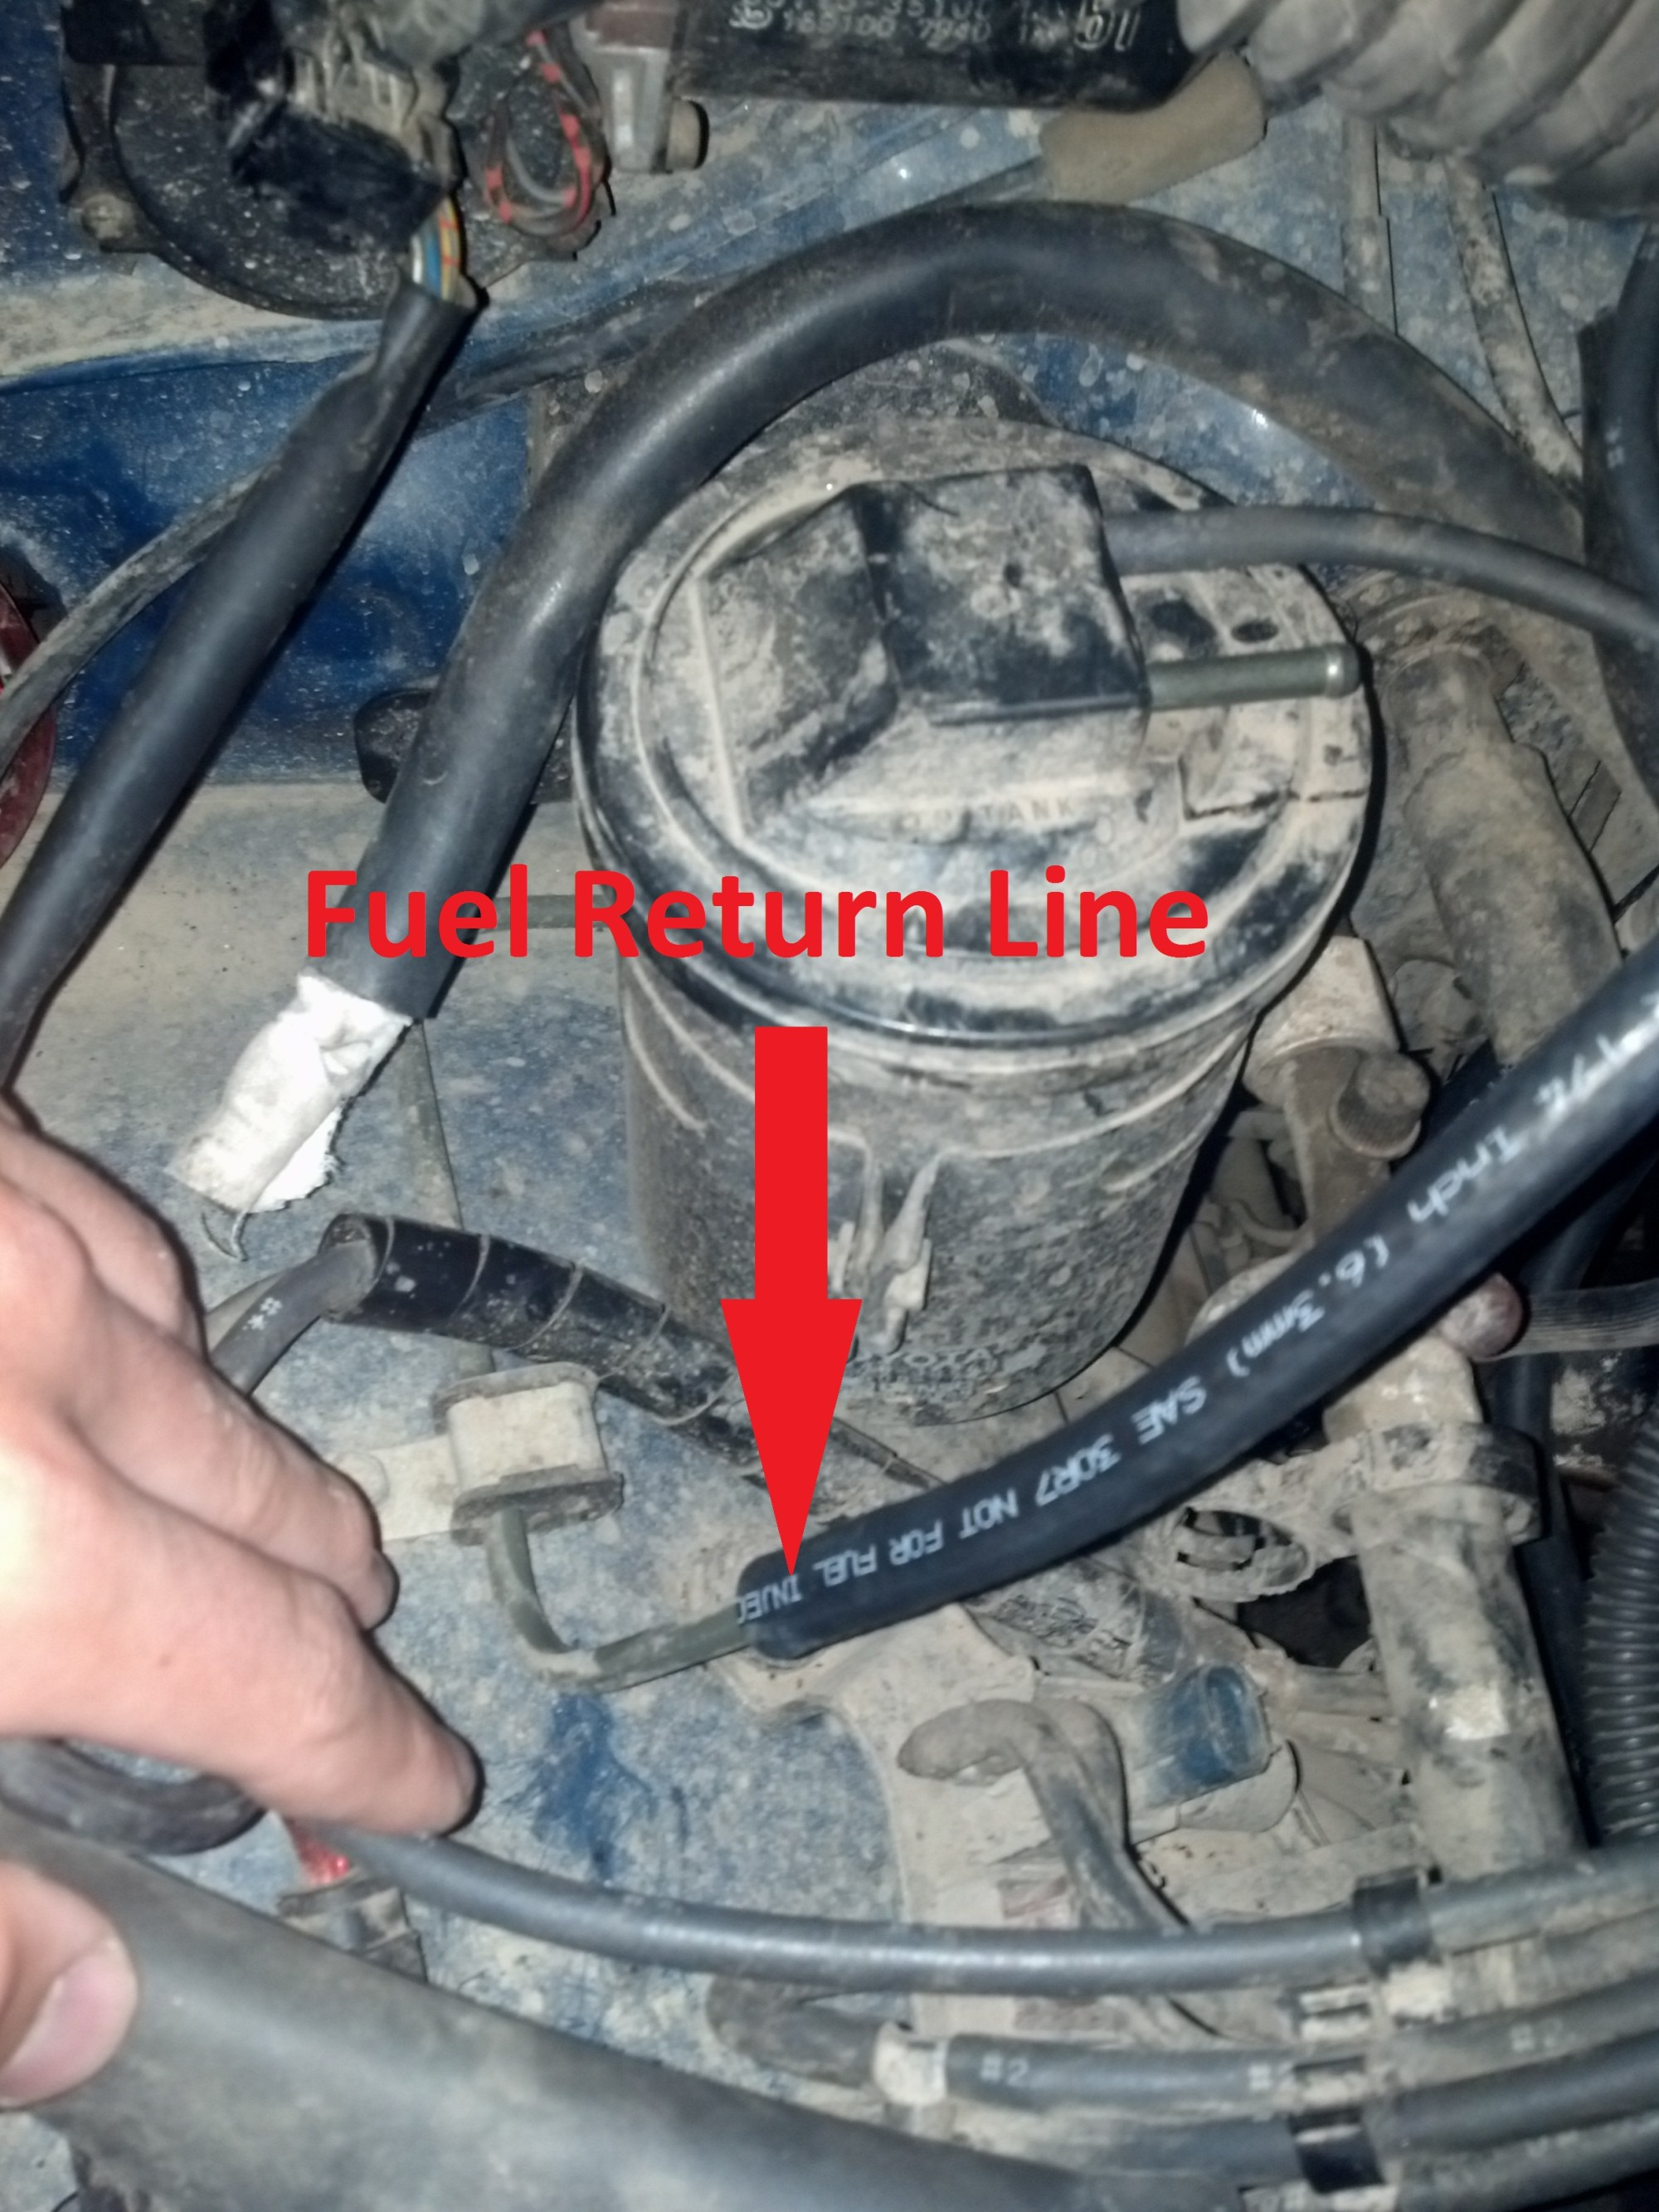 hight resolution of what to do about the fuel return line img 20130921 174847 752 jpg